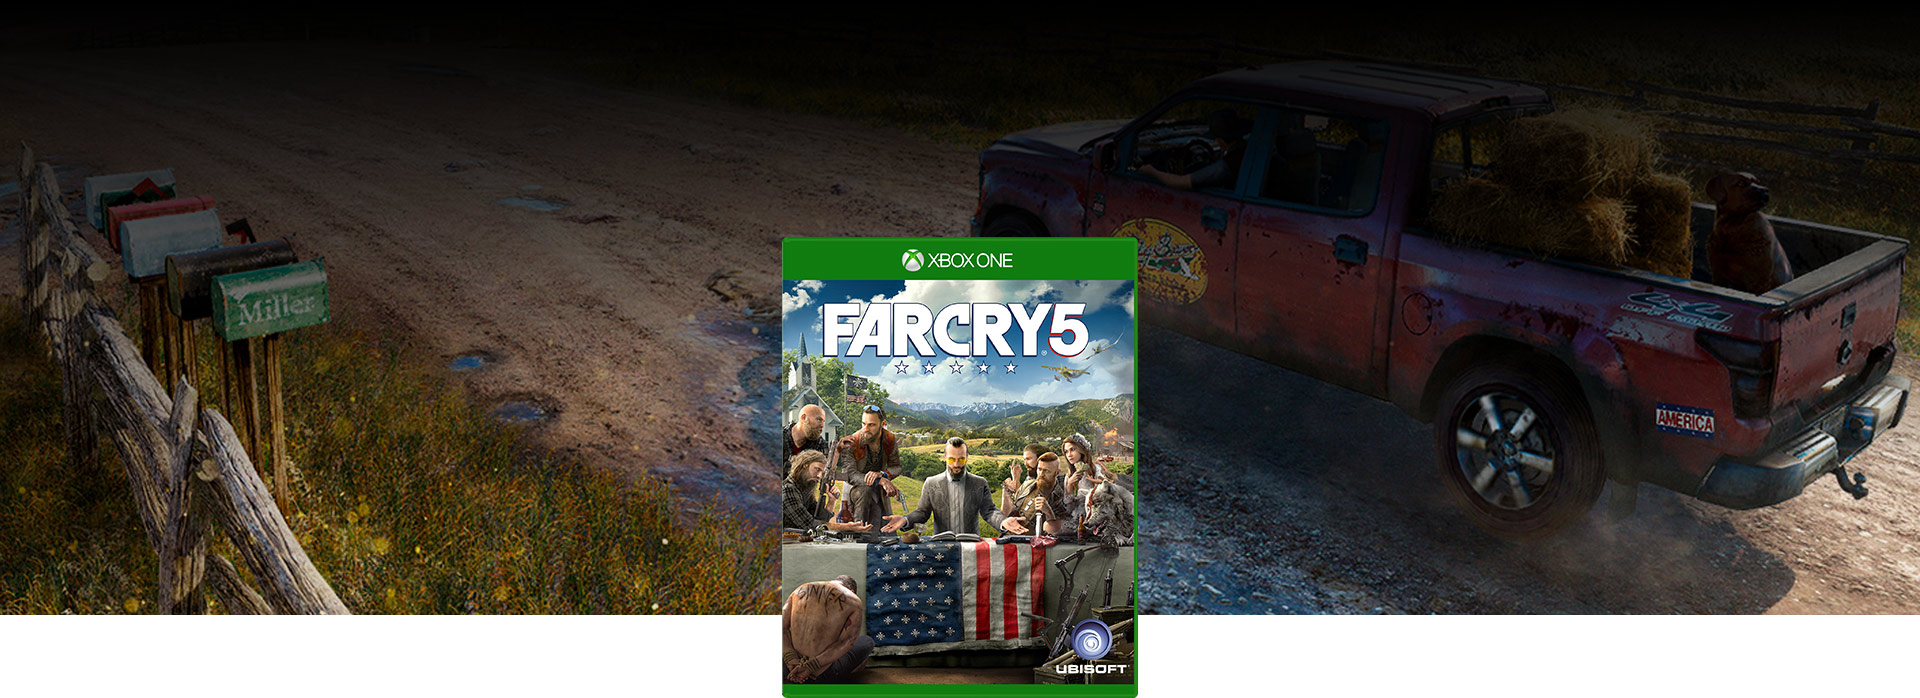 Far Cry 5 boxshot (pick-up truck with dog and hay in flatbed driving down dirt road)